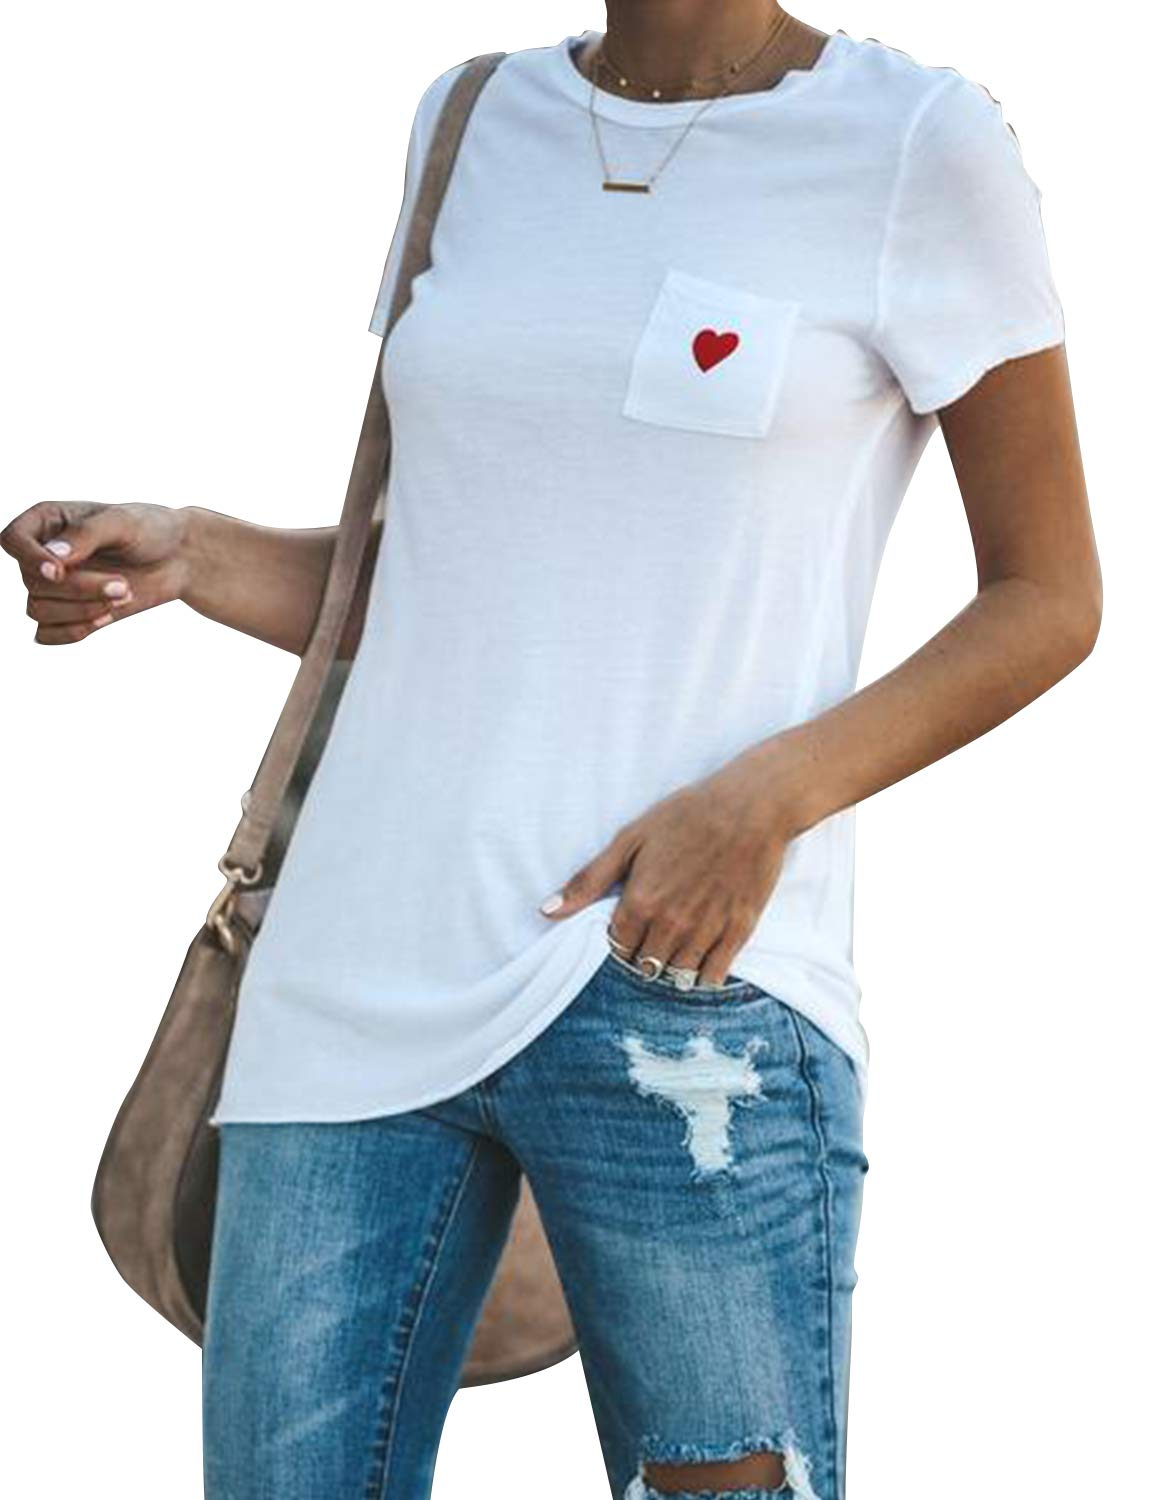 BMJL Women's Basic T Shirt Pocket Floral Heart Short Sleeve Blouse Casual Top White